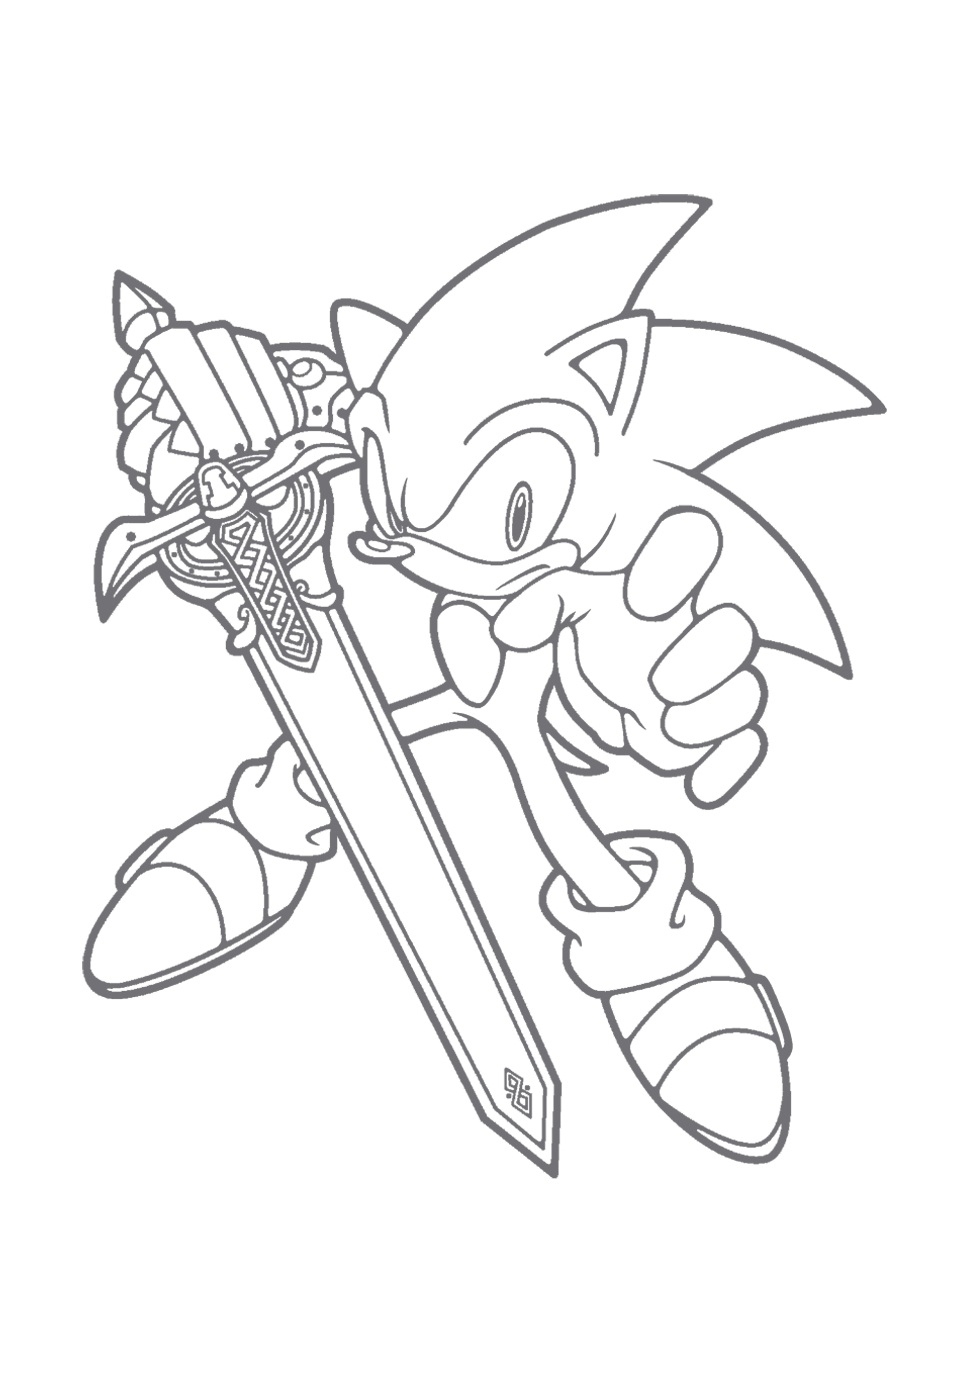 sonic coloring pages - sonic the hedgehog coloring pages